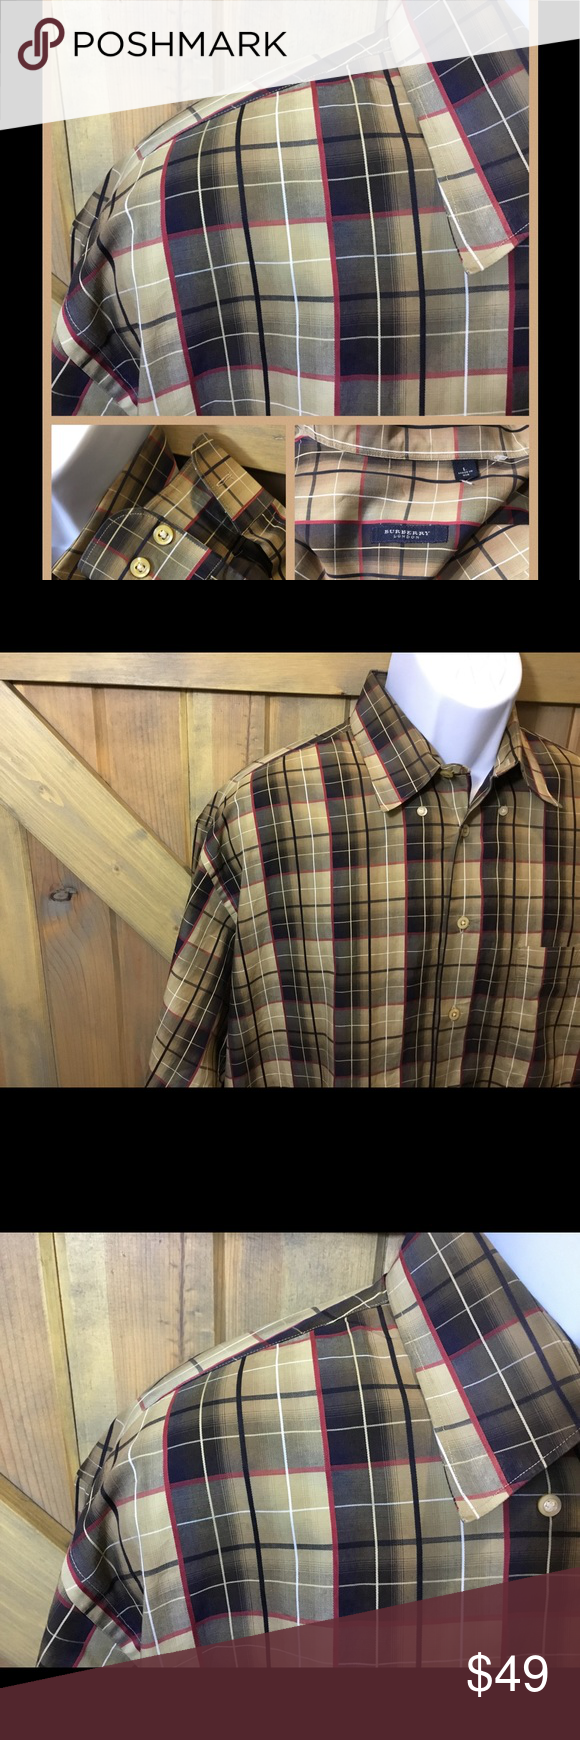 Burberry Mens Dress Shirts Sale Bcd Tofu House